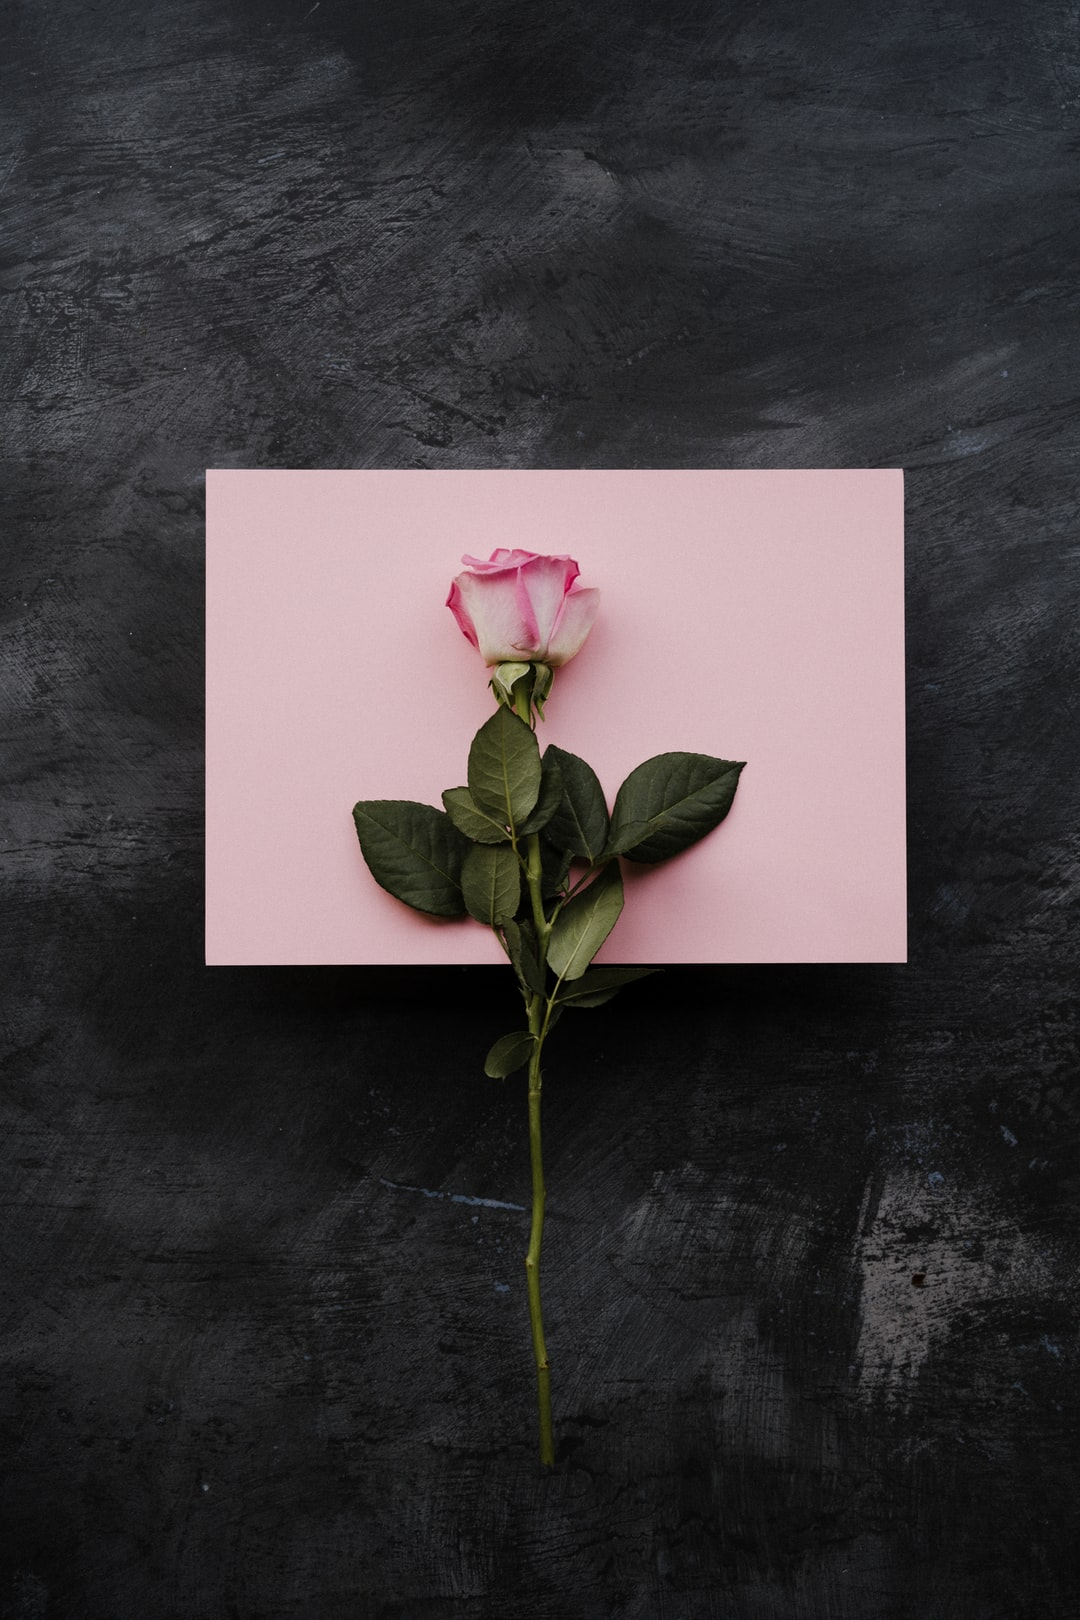 pale pink rose on a dark background with pink card, love, valentines